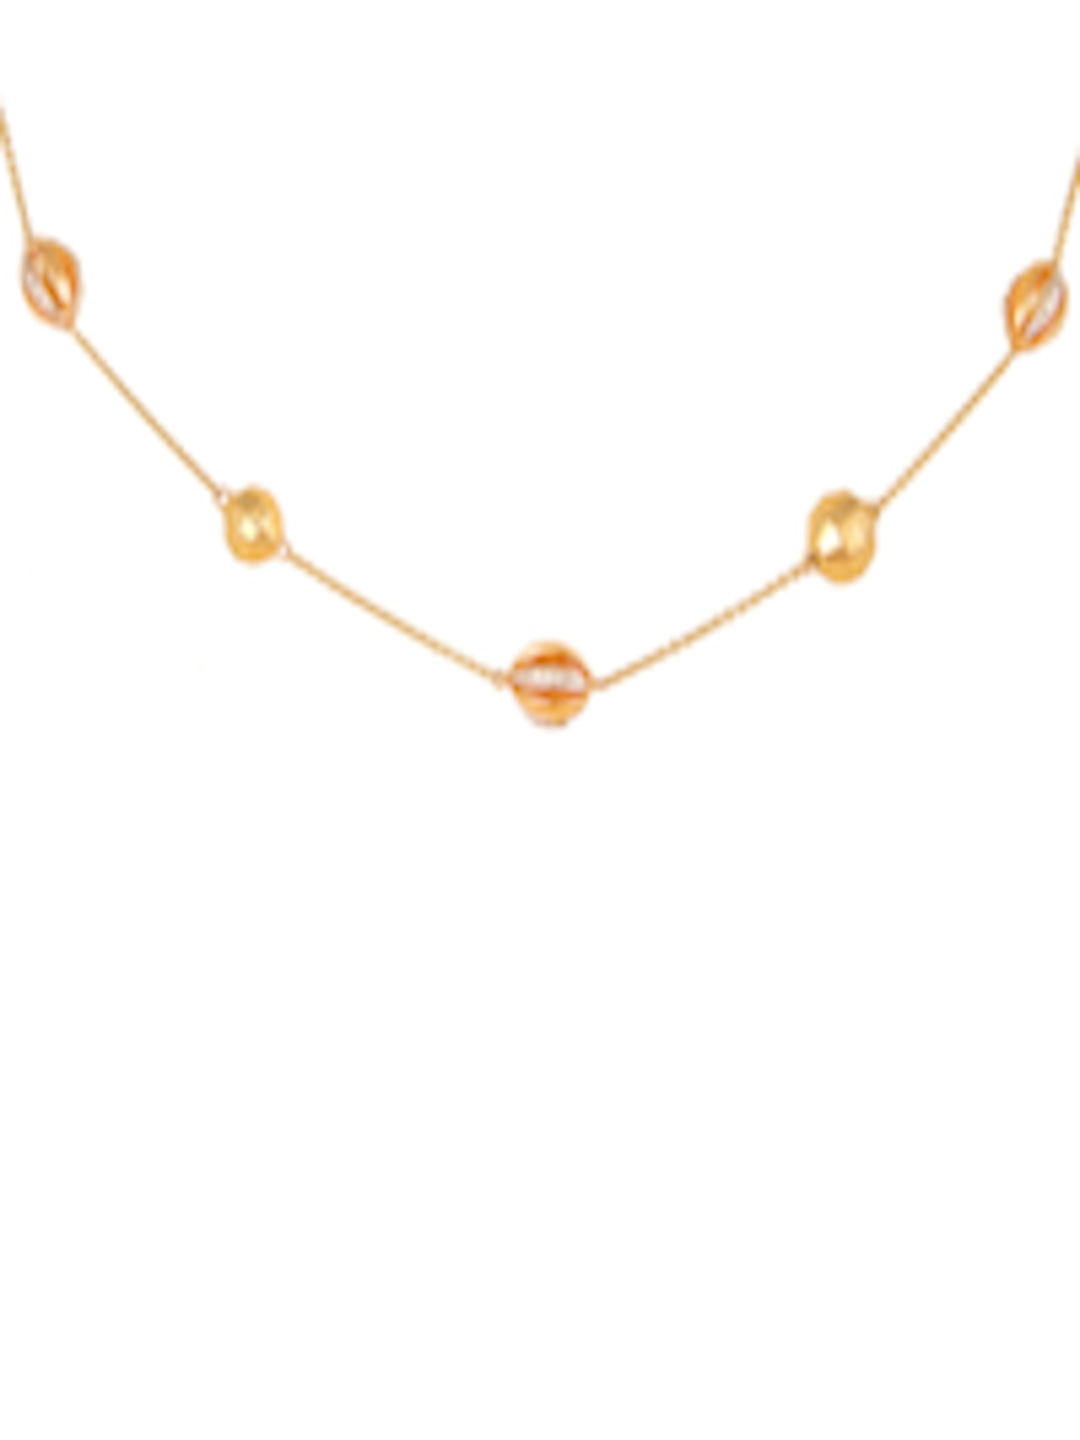 f7f44a441f334 Buy Mia By Tanishq 14KT Yellow Gold Diamond Necklace With Oval Bead  Elements - - Accessories for Women